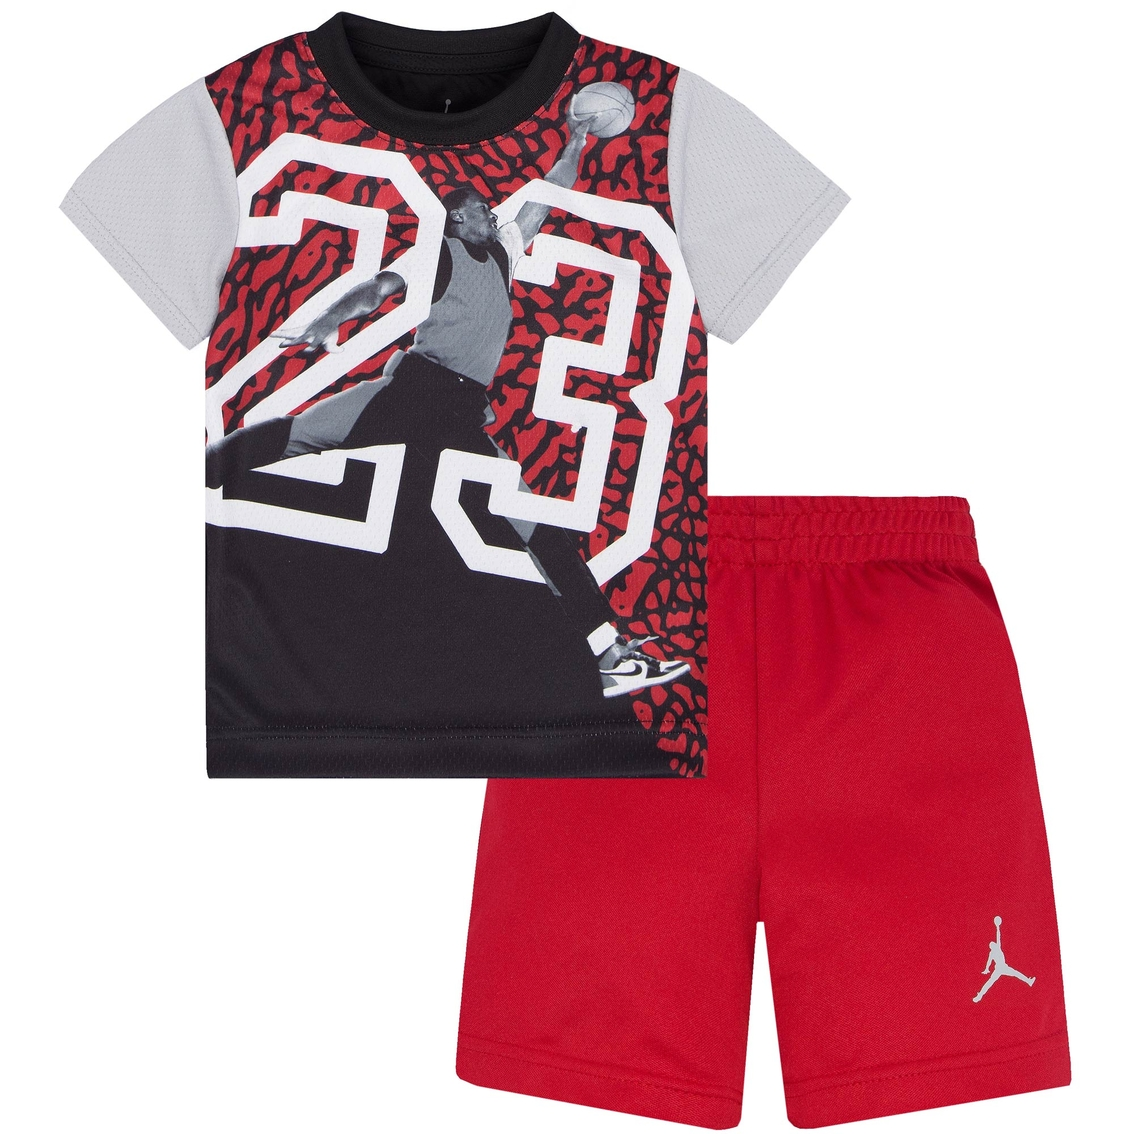 5c10f5884779f3 Jordan Toddler Boys Massive 23 Sublimation 2 pc. Tricot Tee and Shorts Set